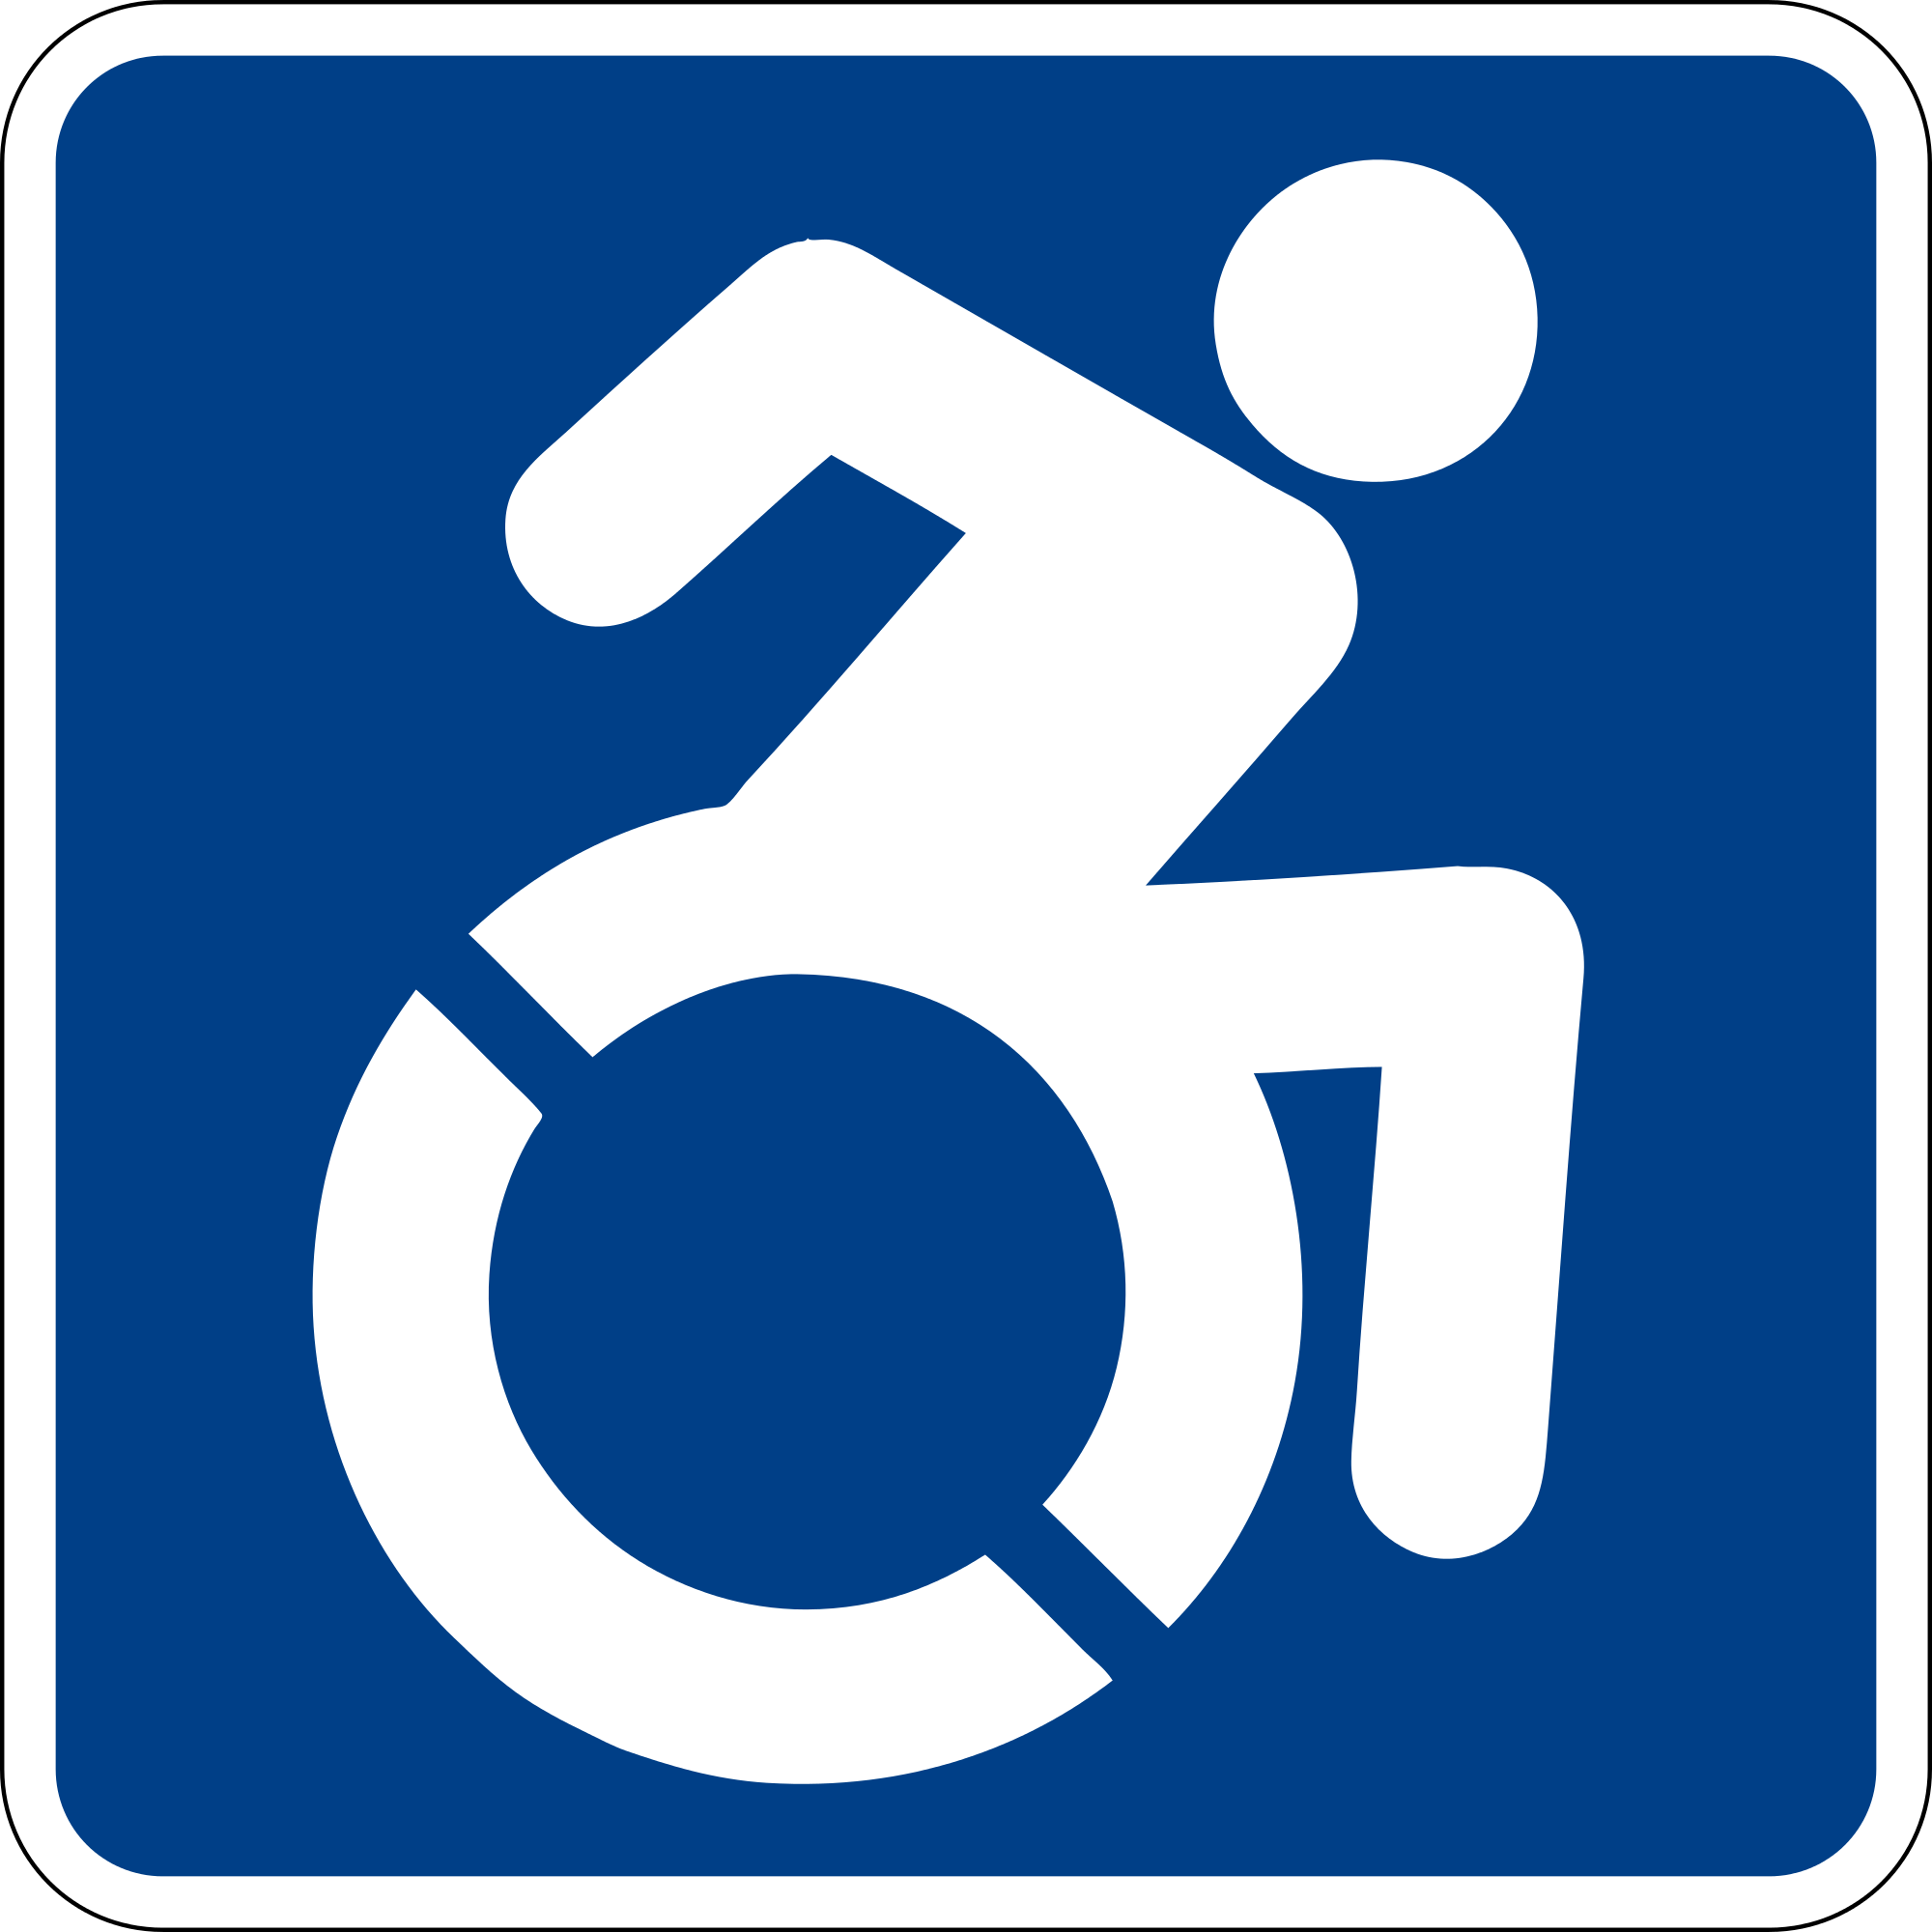 Intl Symbol of Access